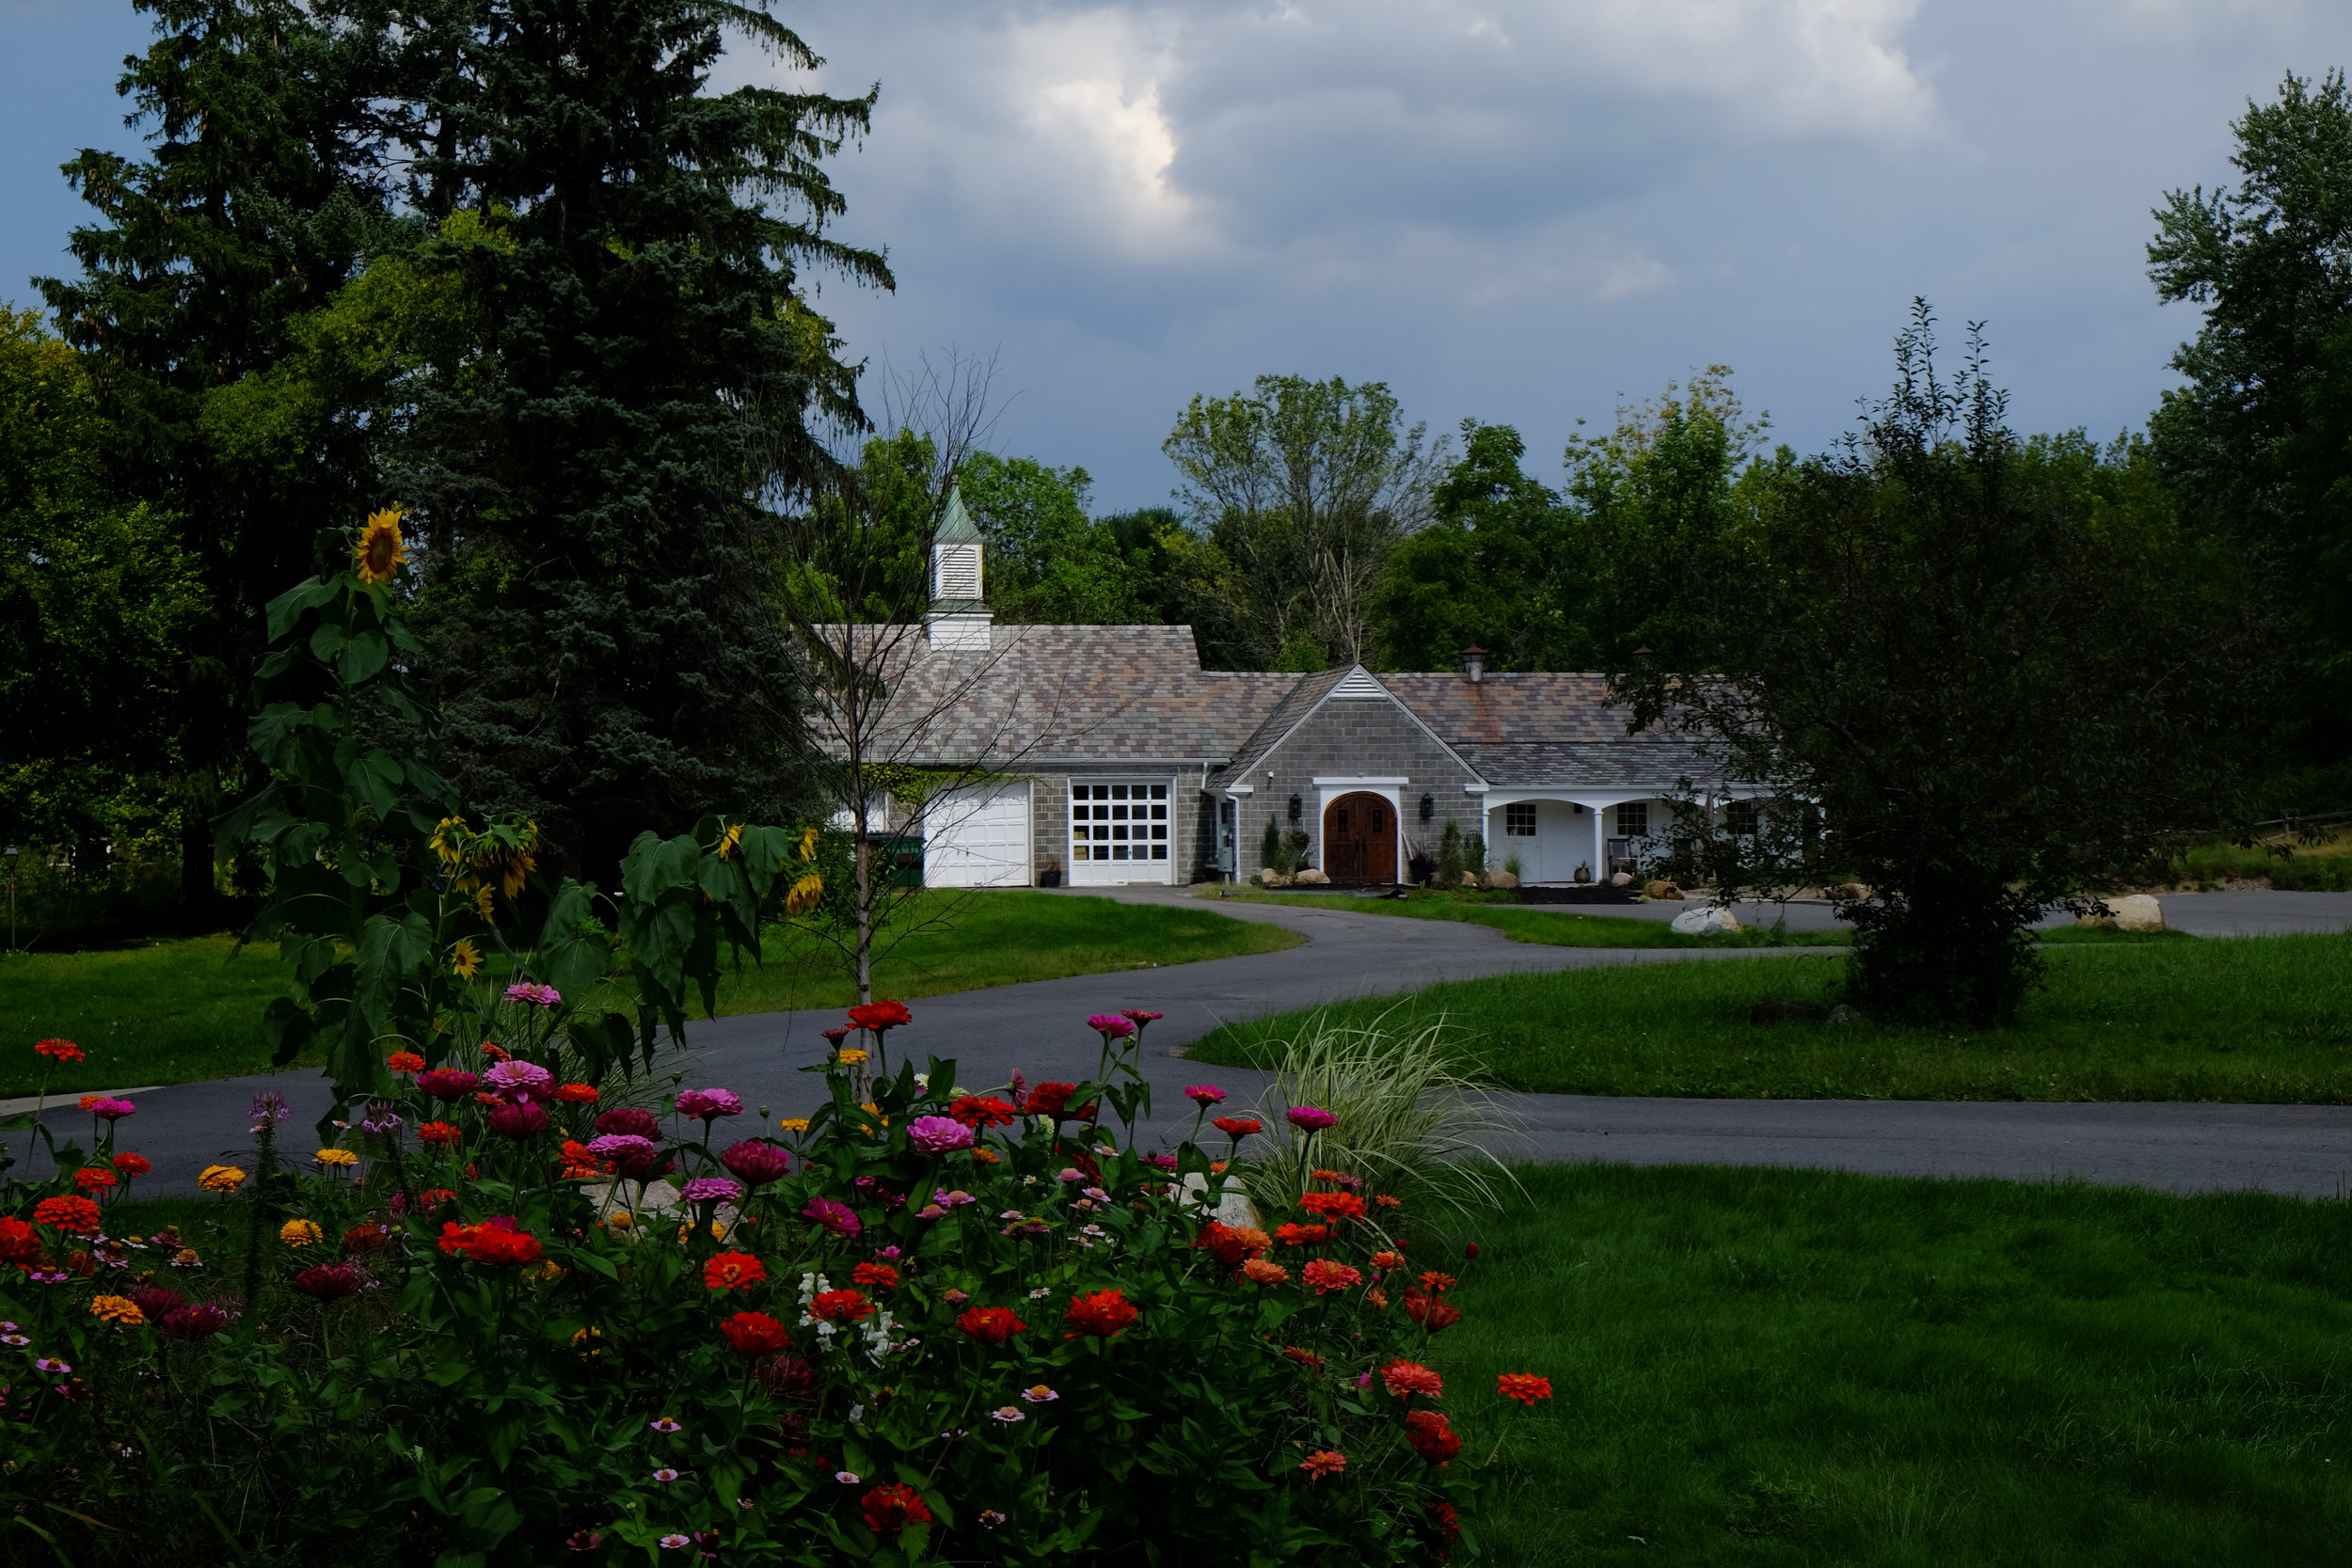 Stables and Spring flowers